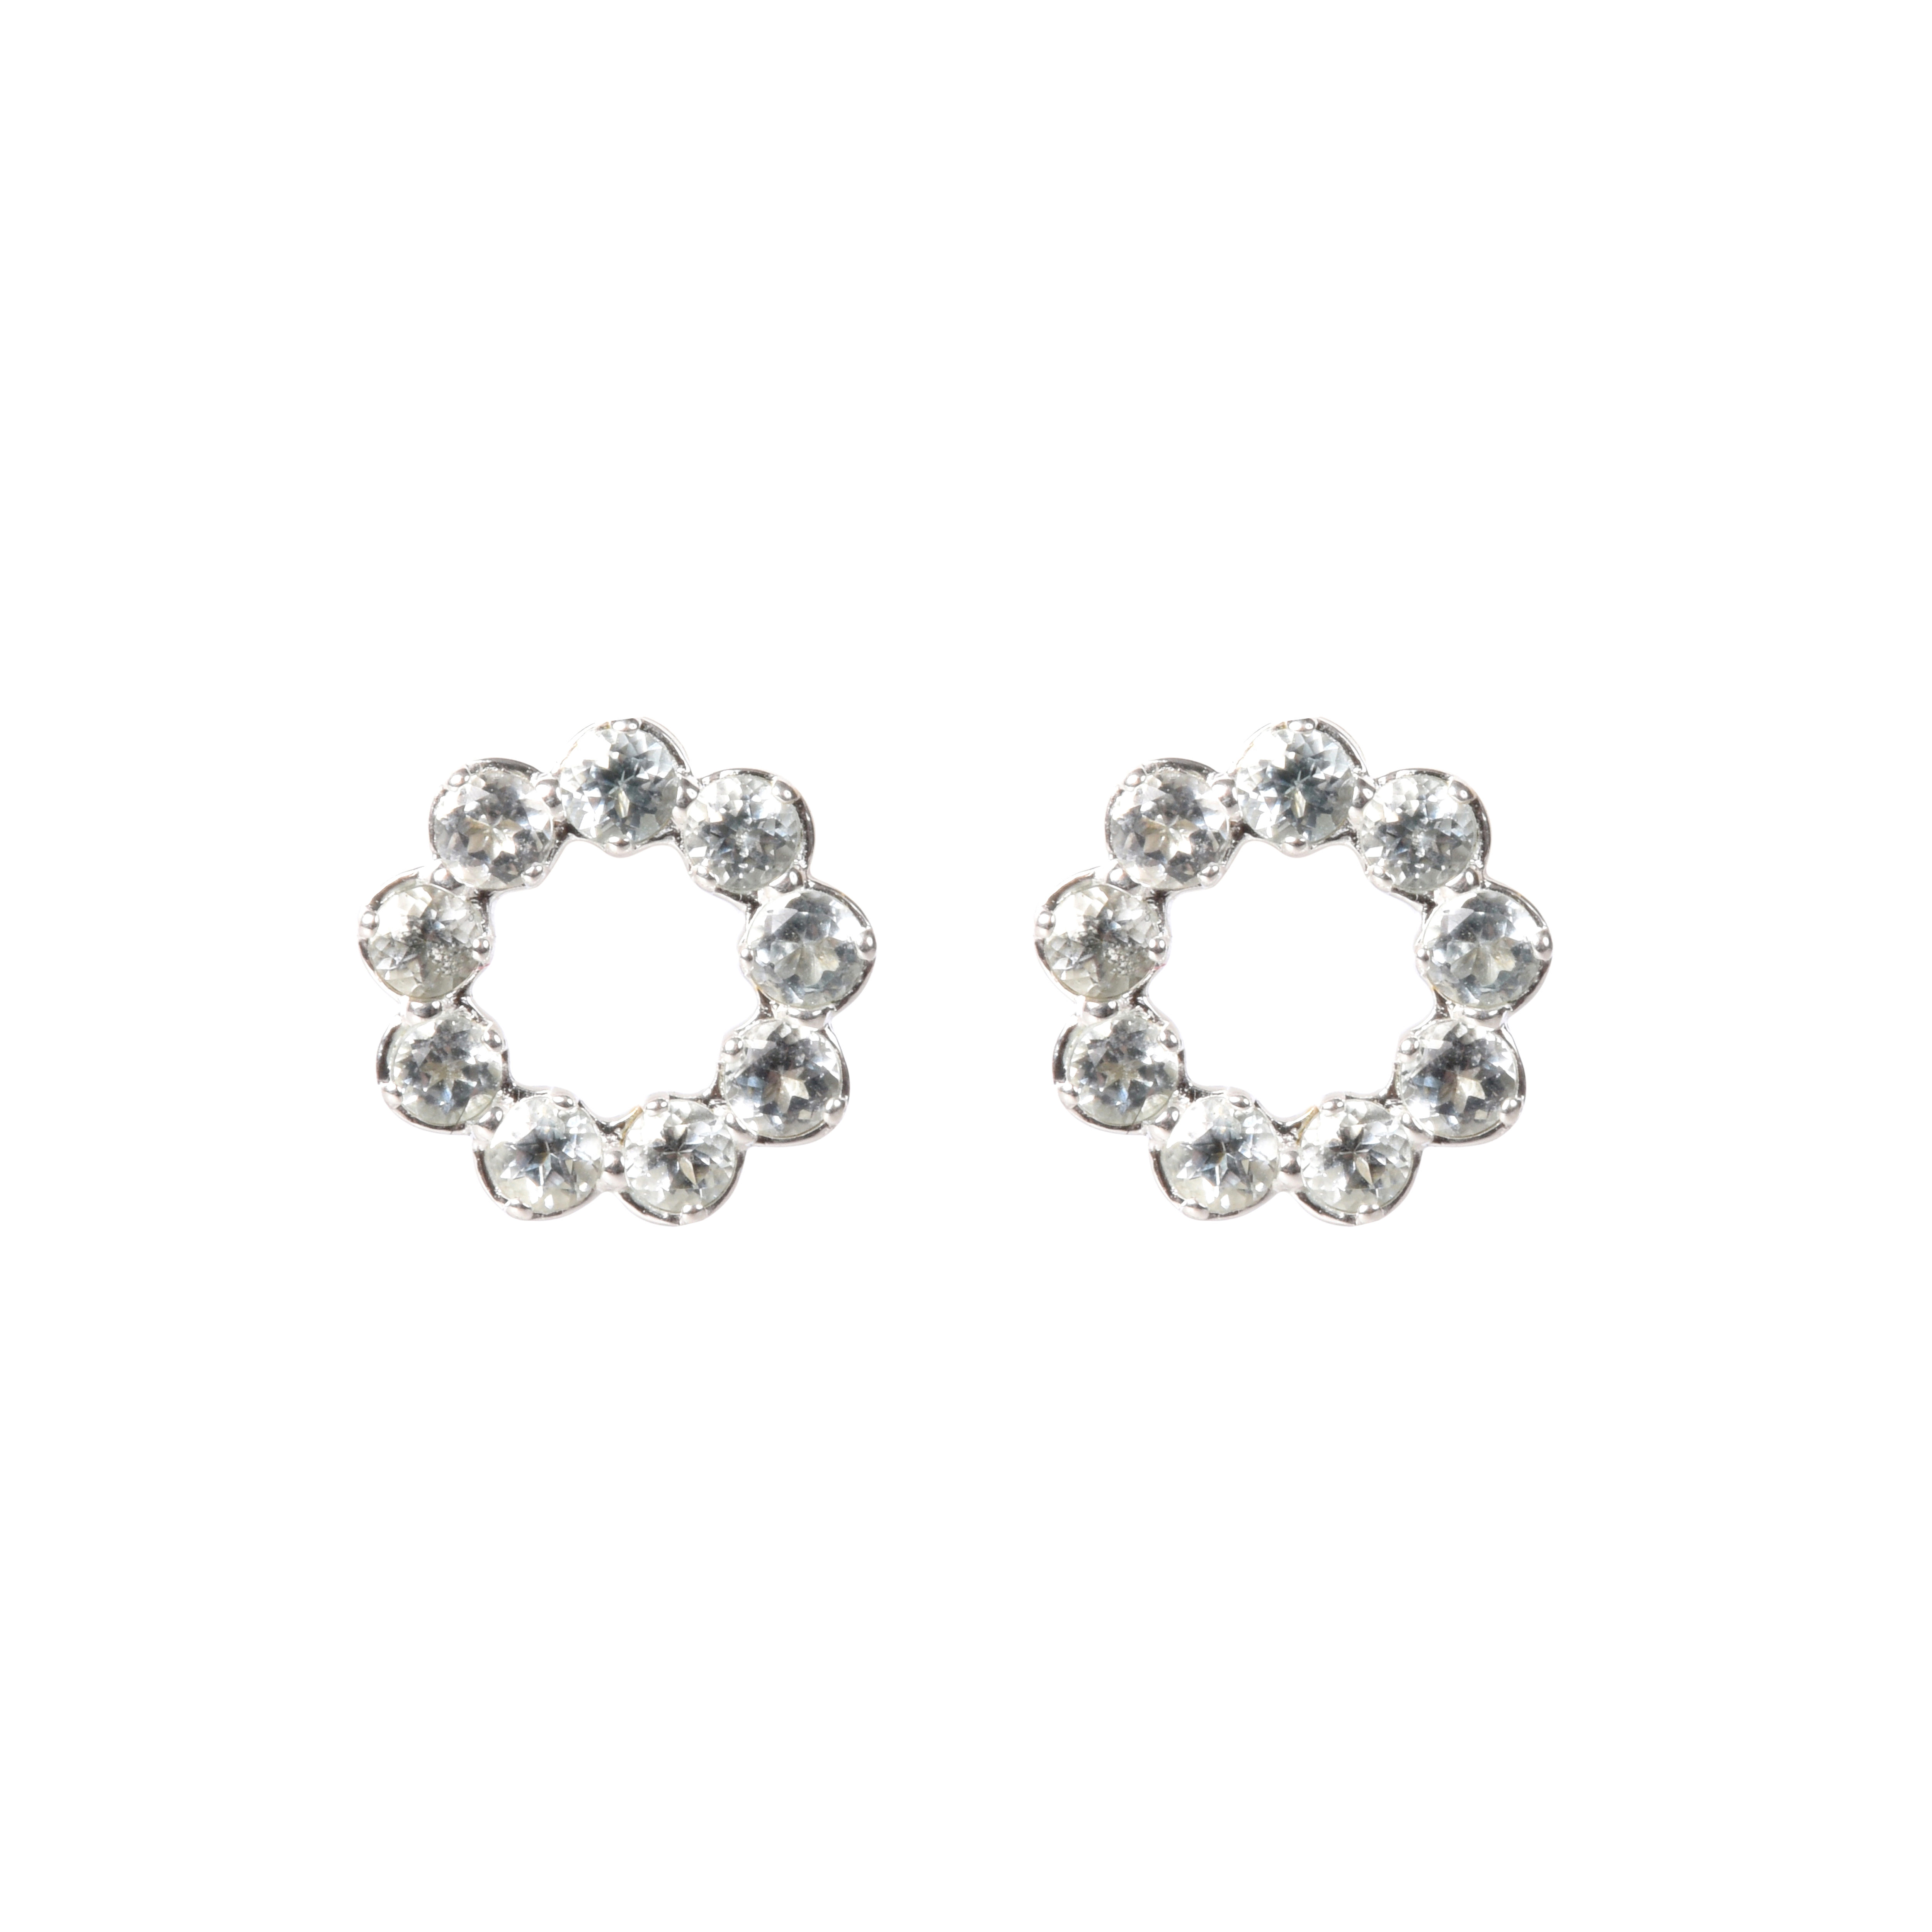 halo earrings stud jadazzles